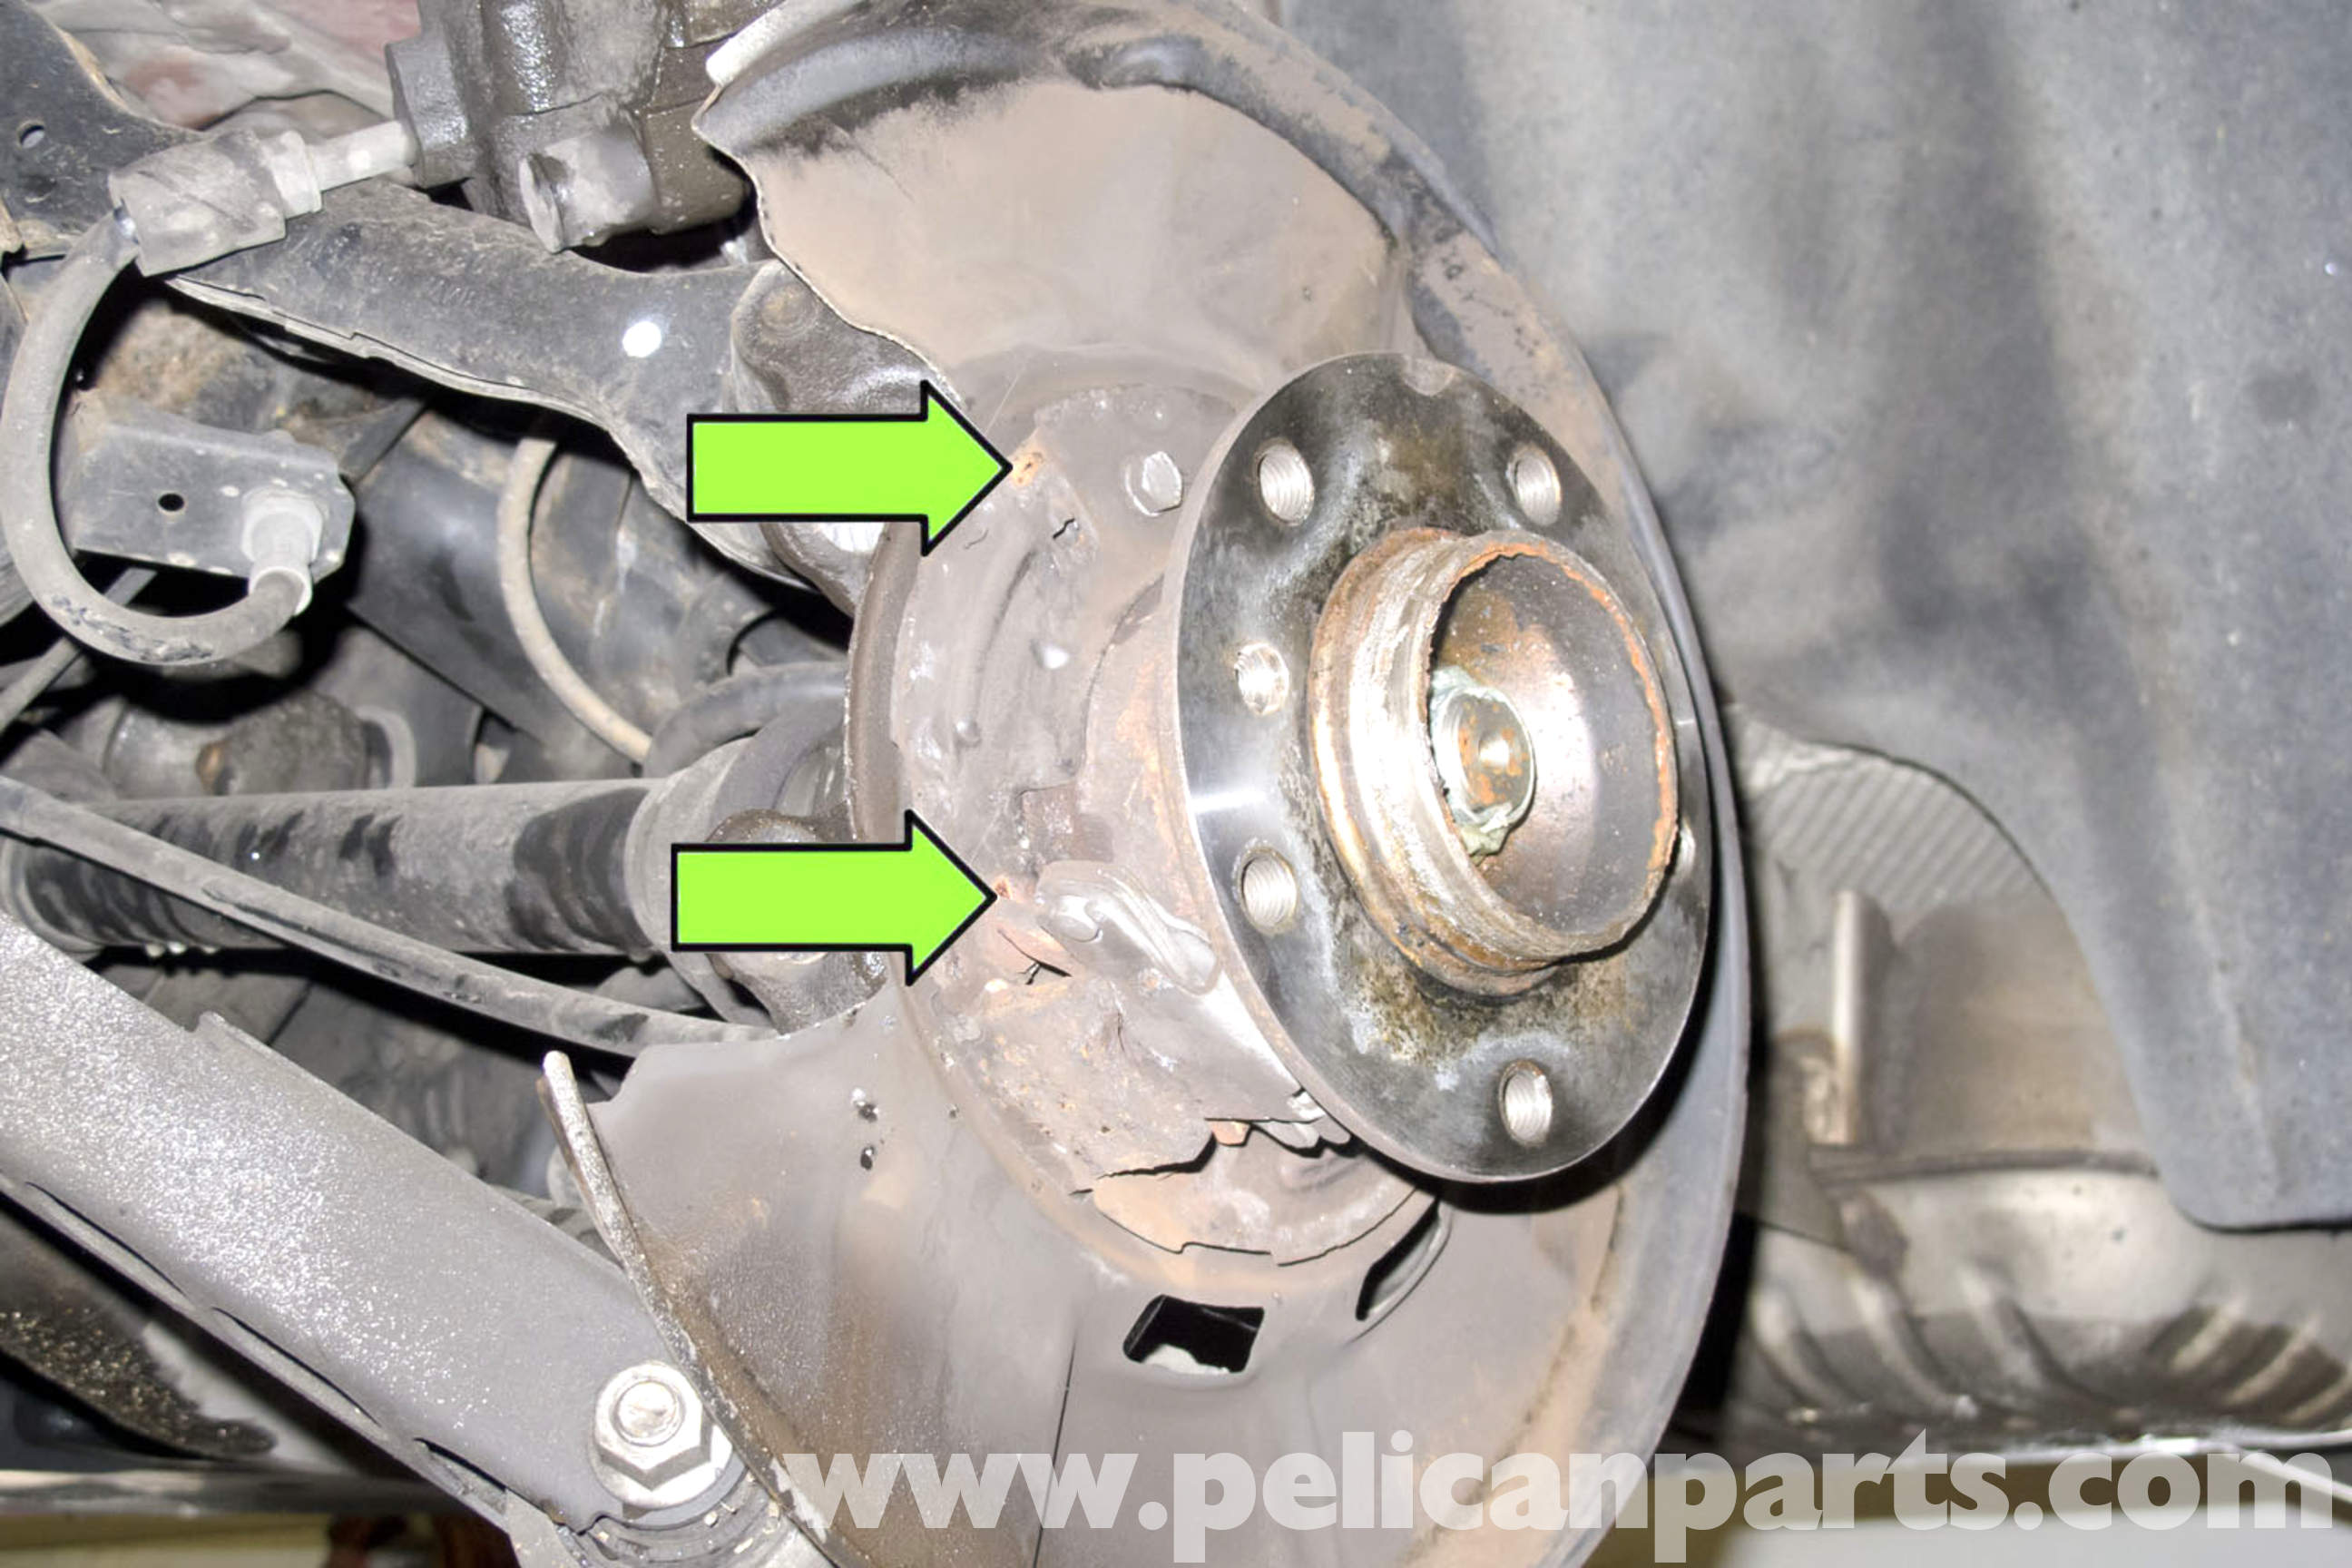 Bmw E90 Parking Brake Shoes Replacement E91 E92 E93 Pelican This Diagram Explains The Various Parts That Make Up A Disc Braking Large Image Extra